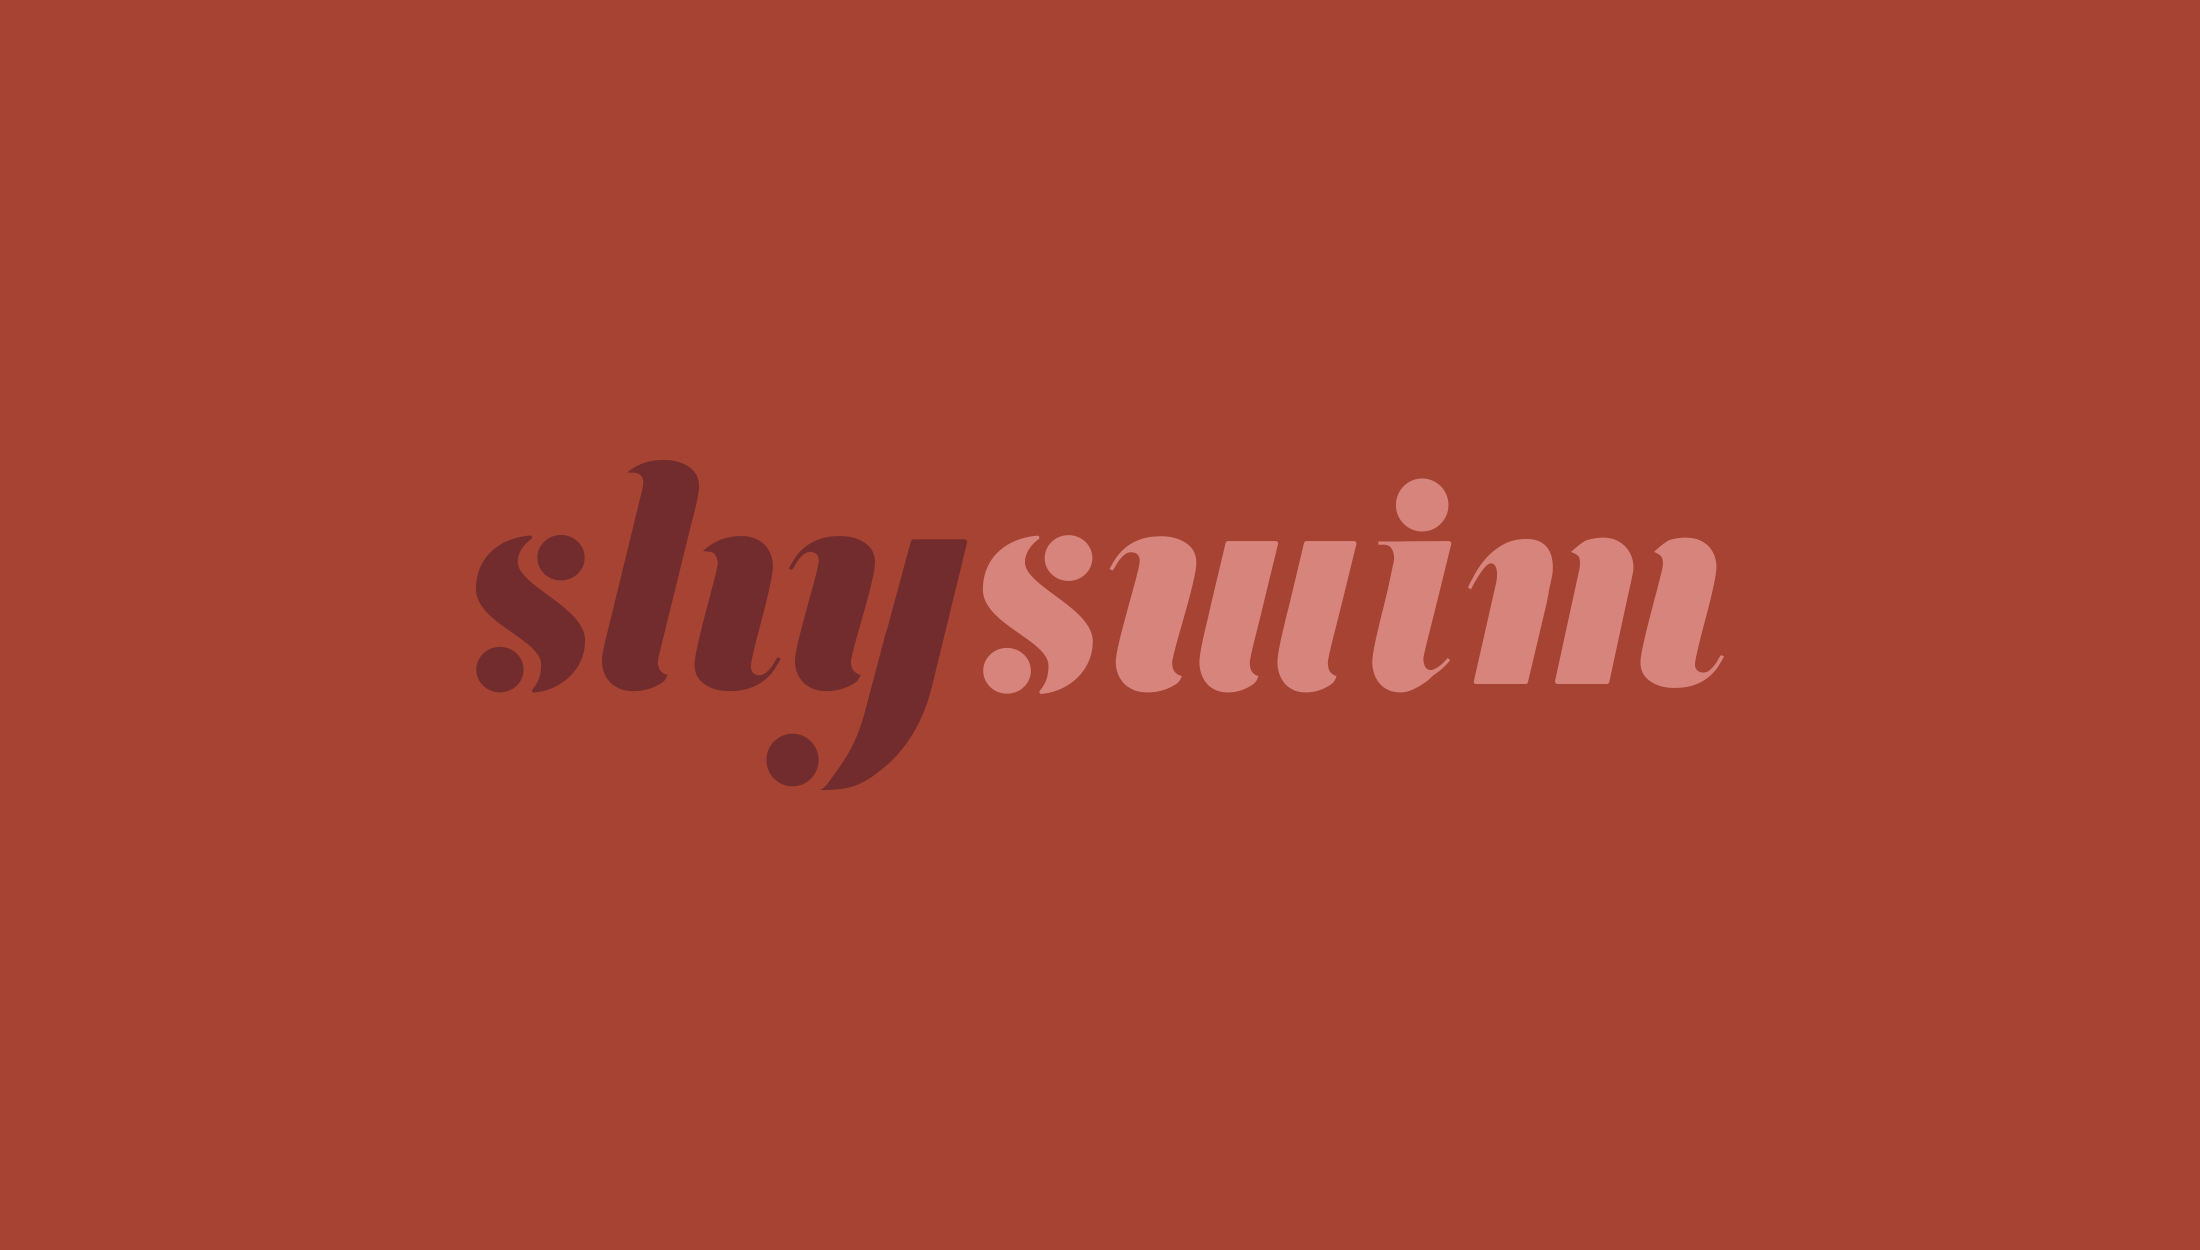 Logo design for Shy Swim, a luxury swimwear line bringing bespoke and luxurious costumes to women - designed by Wiltshire-based graphic designer, Kaye Huett